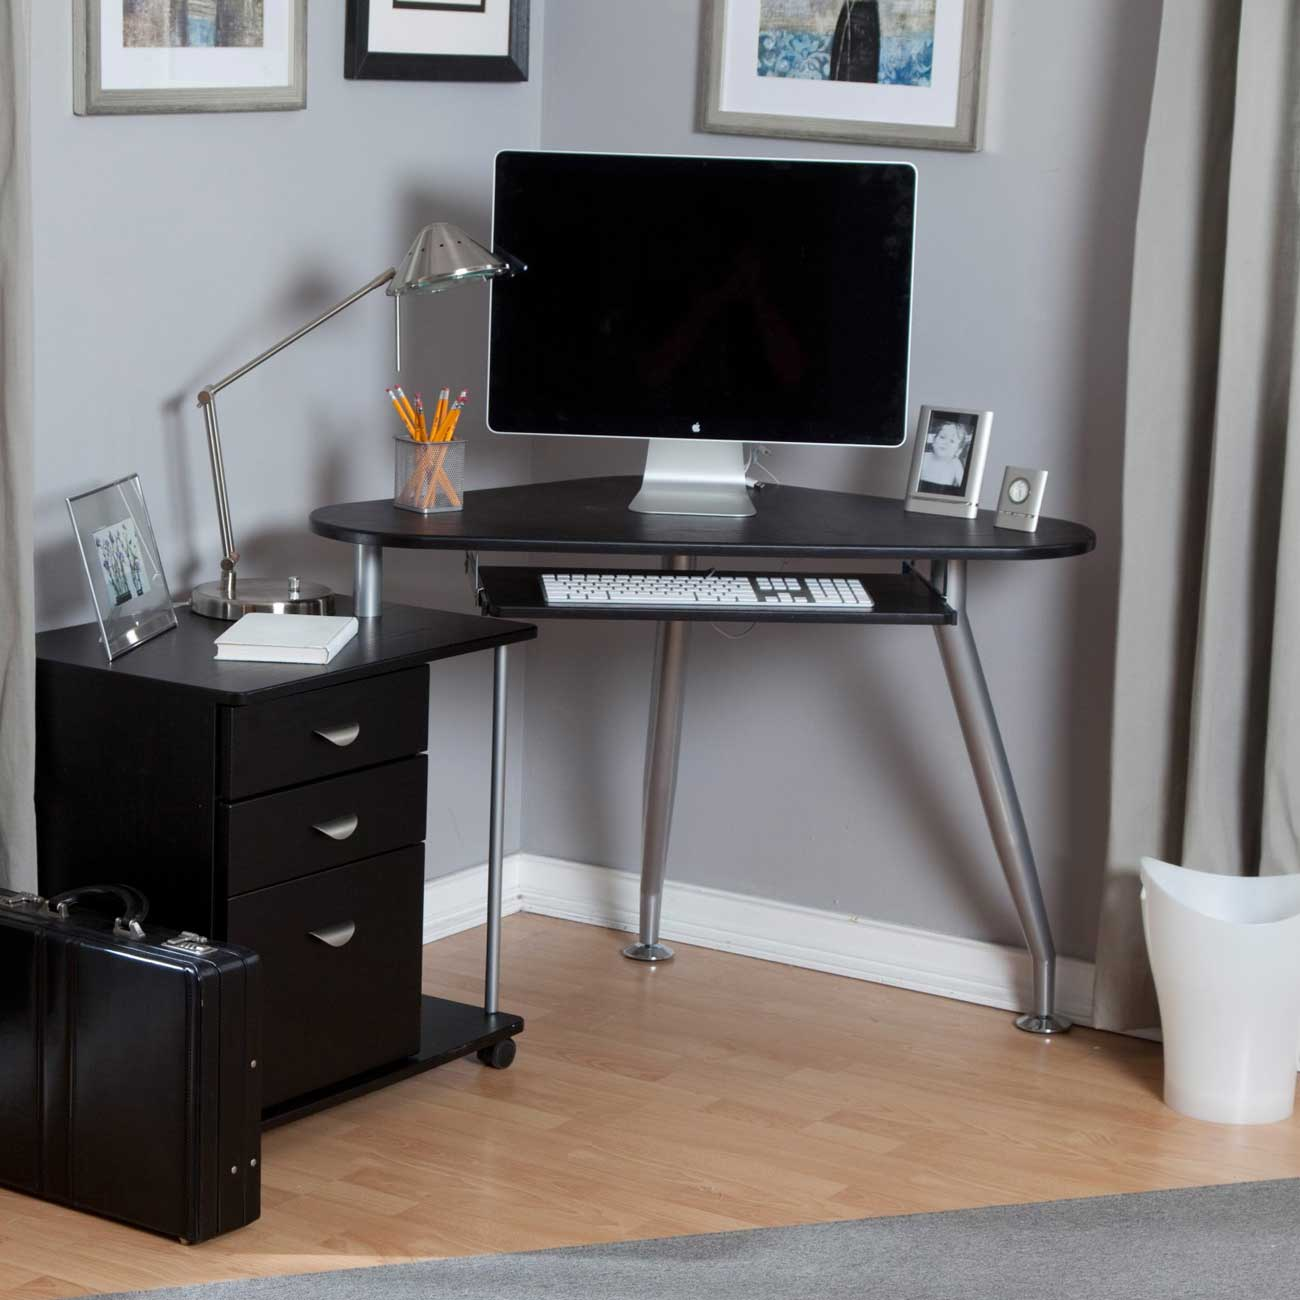 Small computer desk for bedroom home furniture design Small bedroom desk